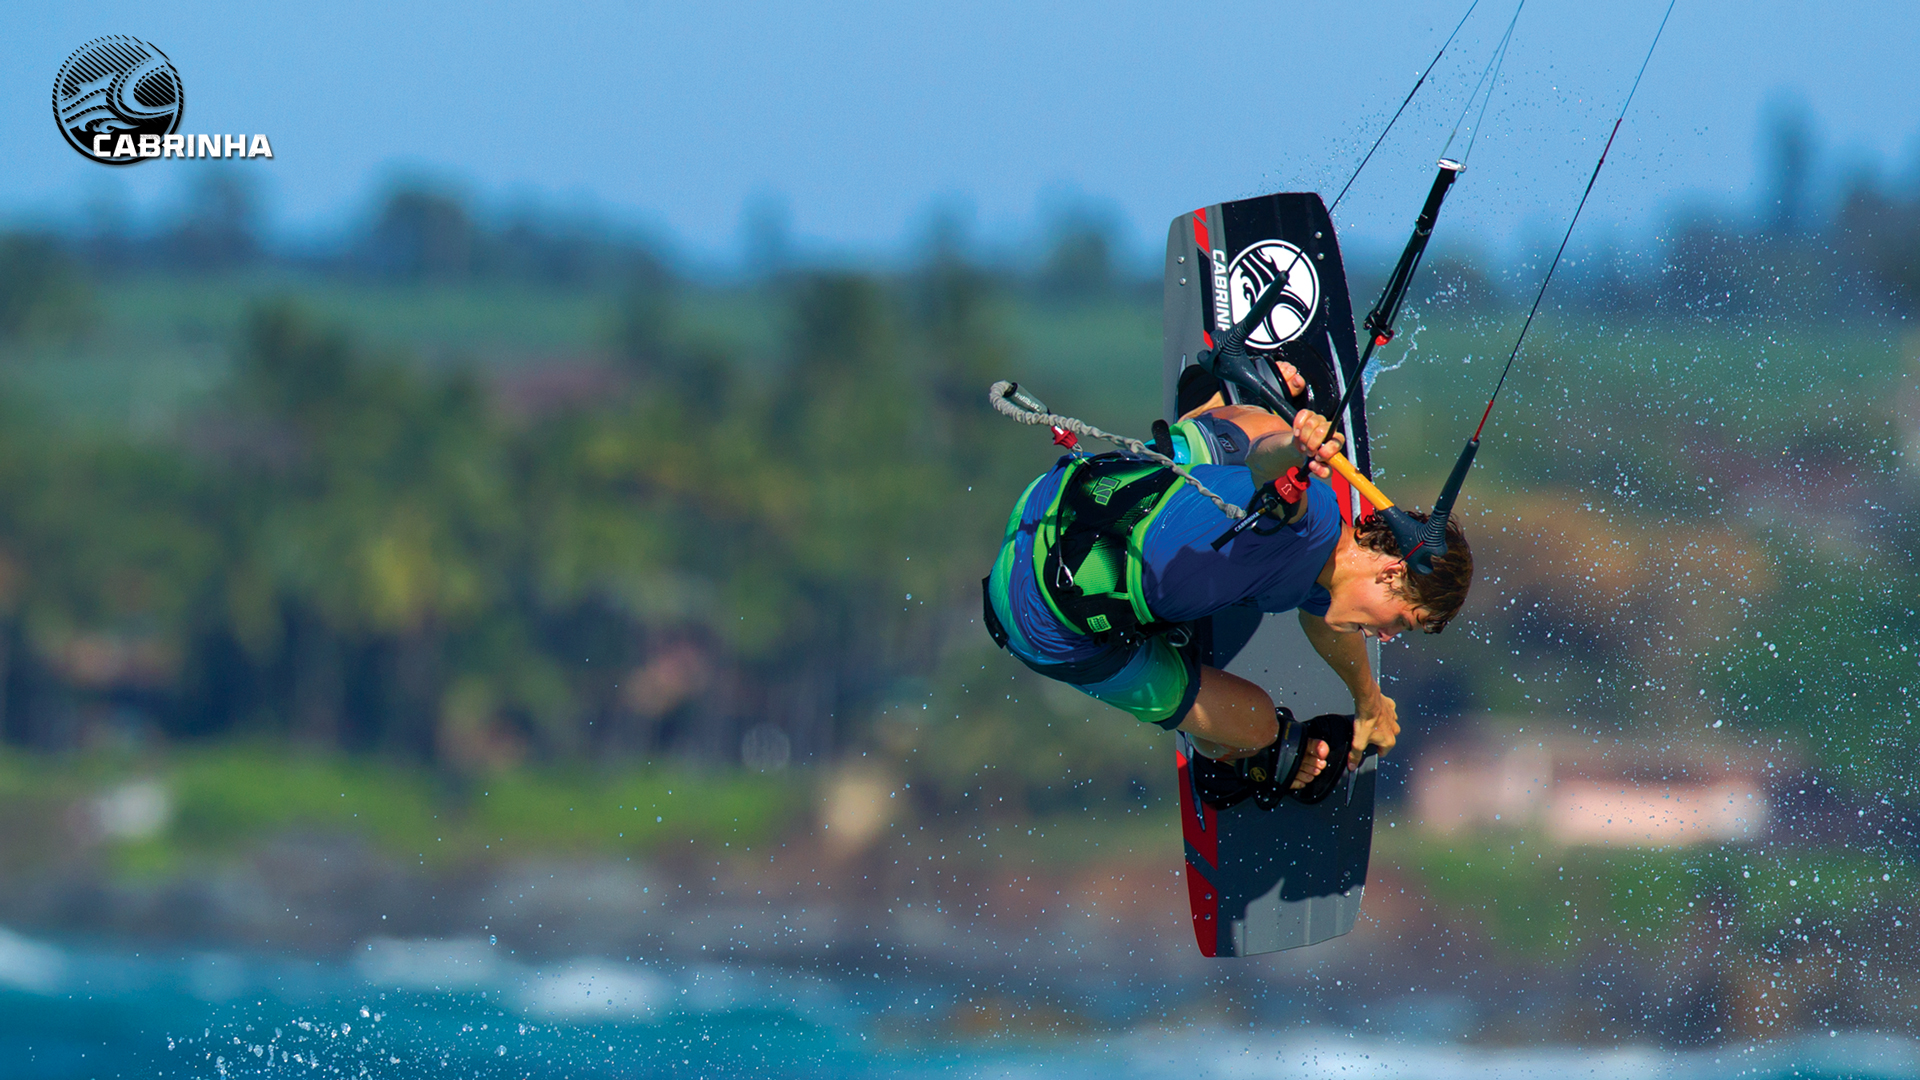 kitesurf wallpaper image - Liam Whaley on the 2015 Cabrinha Ace twintip with a nice board grab. - in resolution: High Definition - HD 16:9 1920 X 1080